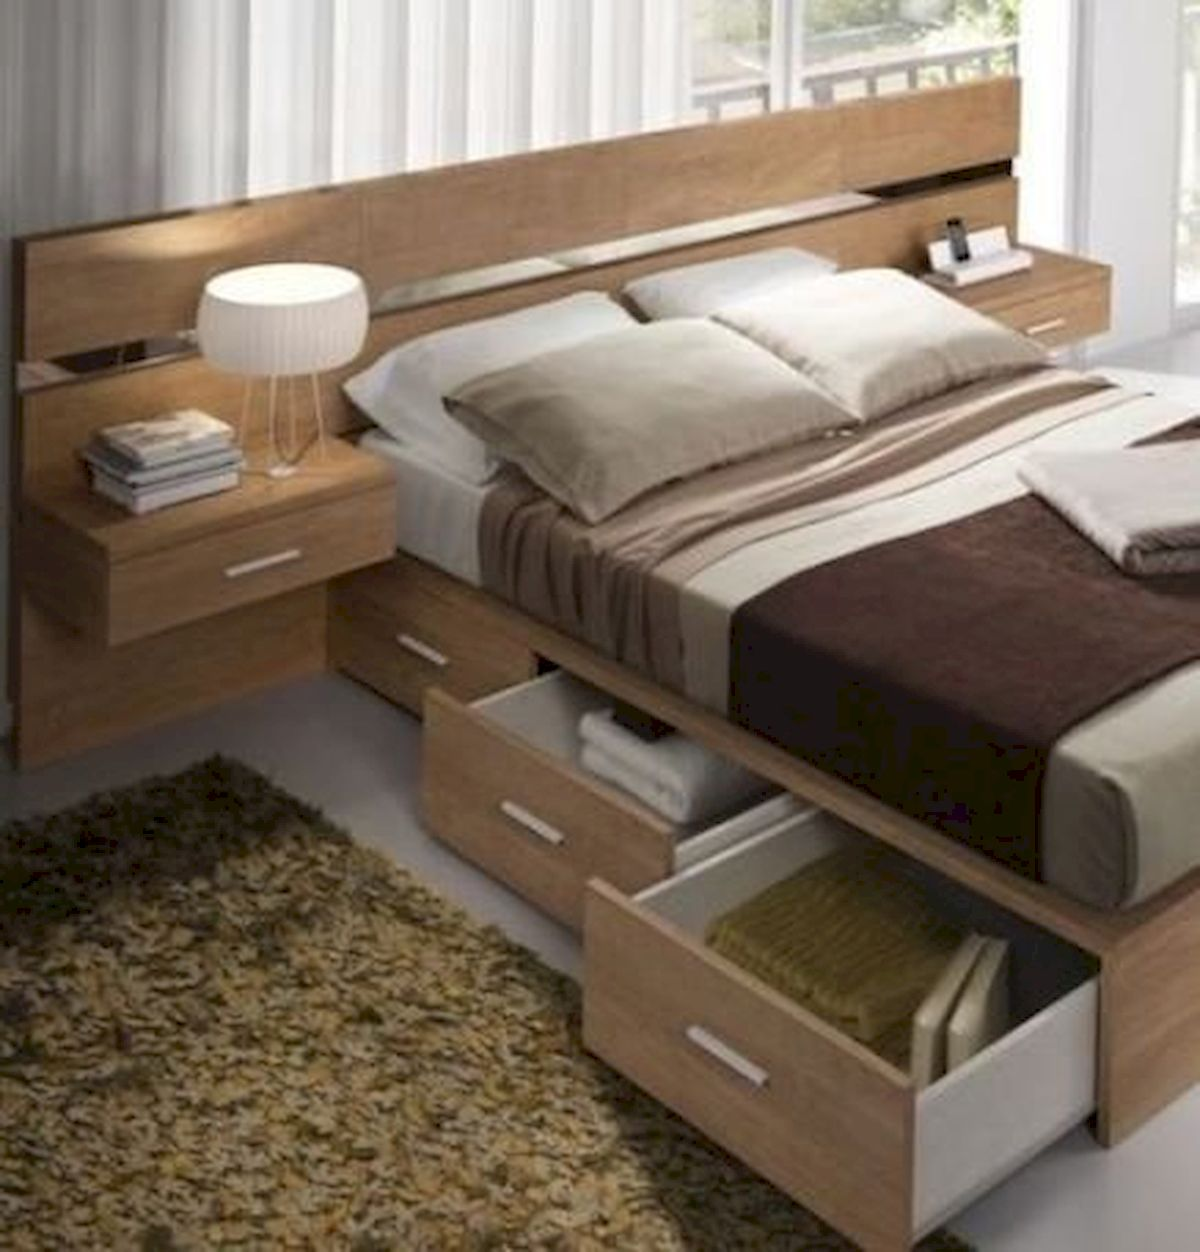 60 Easy and Brilliant DIY Storage Ideas For Small Bedroom (57)